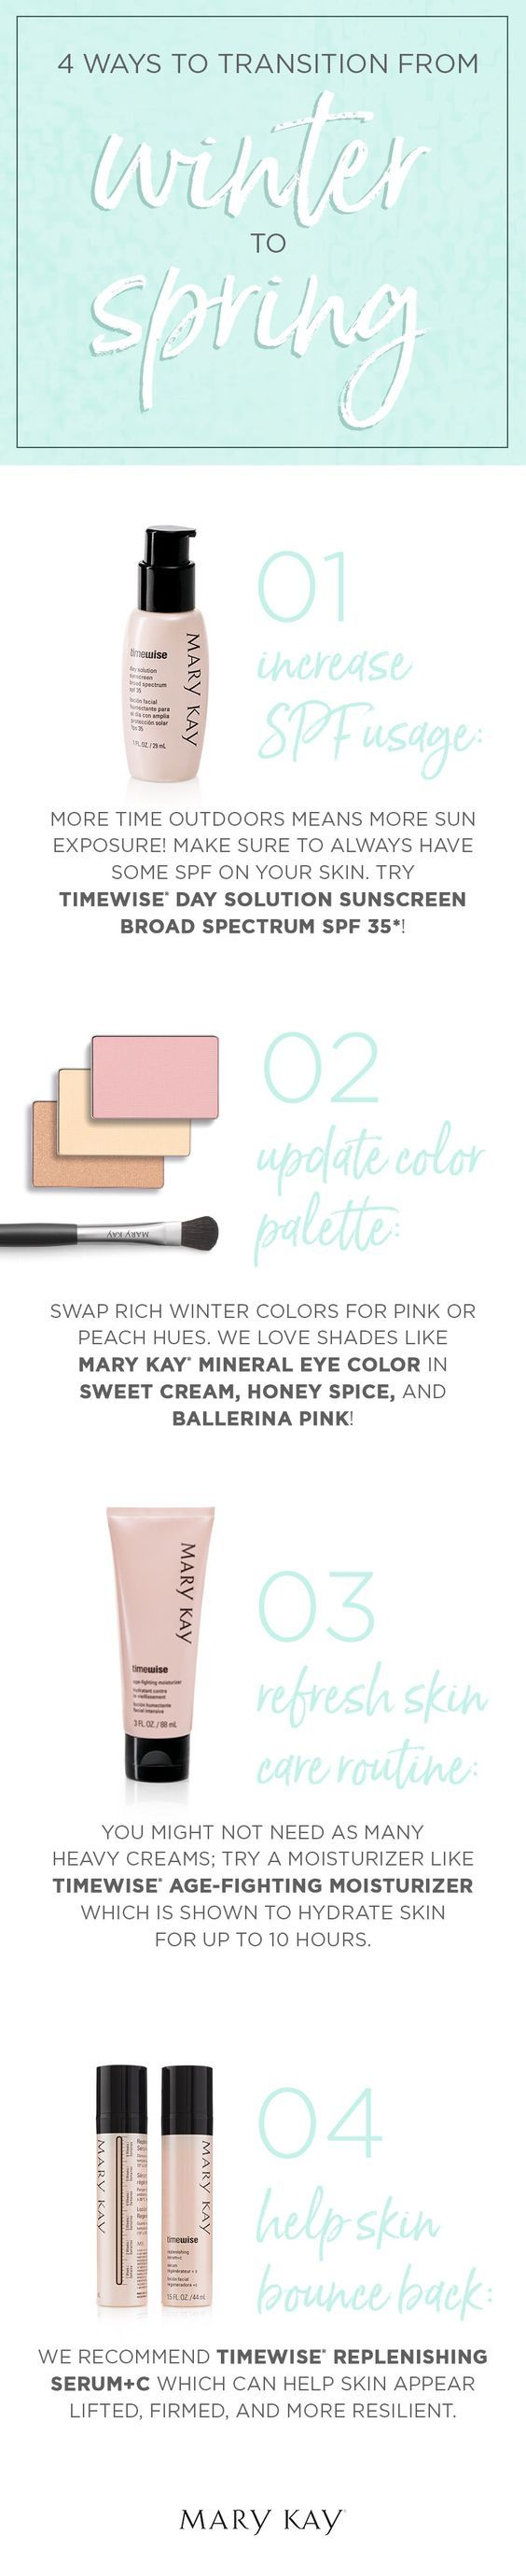 Mary Kay Online Agreement On Intouch - Transition from winter to spring with both your wardrobe and your beauty routine increase spf